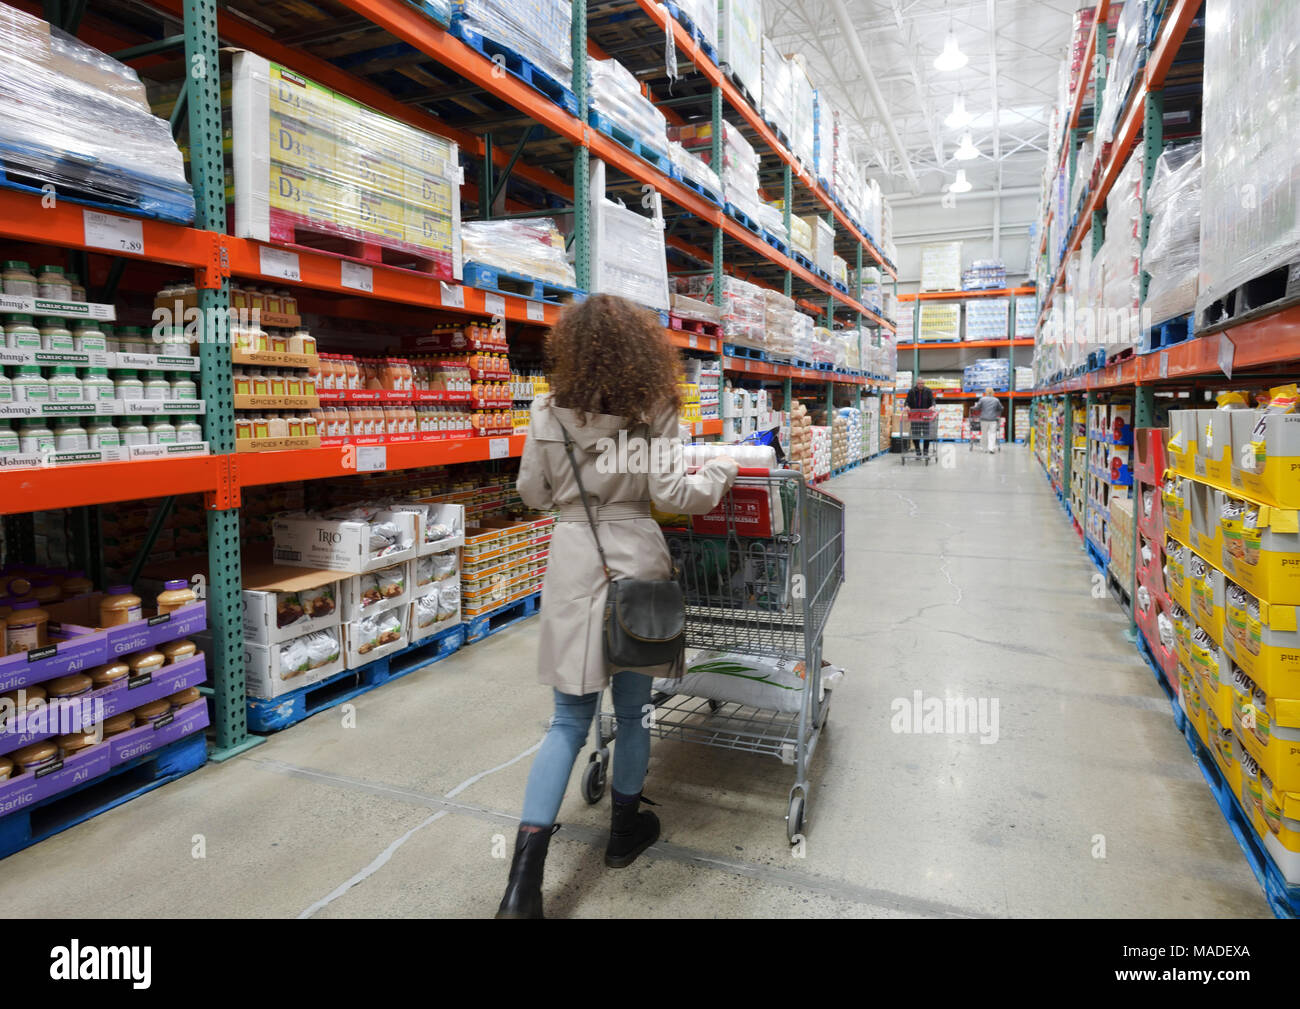 Woman with a shopping cart walking along the aisle of food and groceries section at Costco Wholesale membership warehouse store. British Columbia, Can Stock Photo